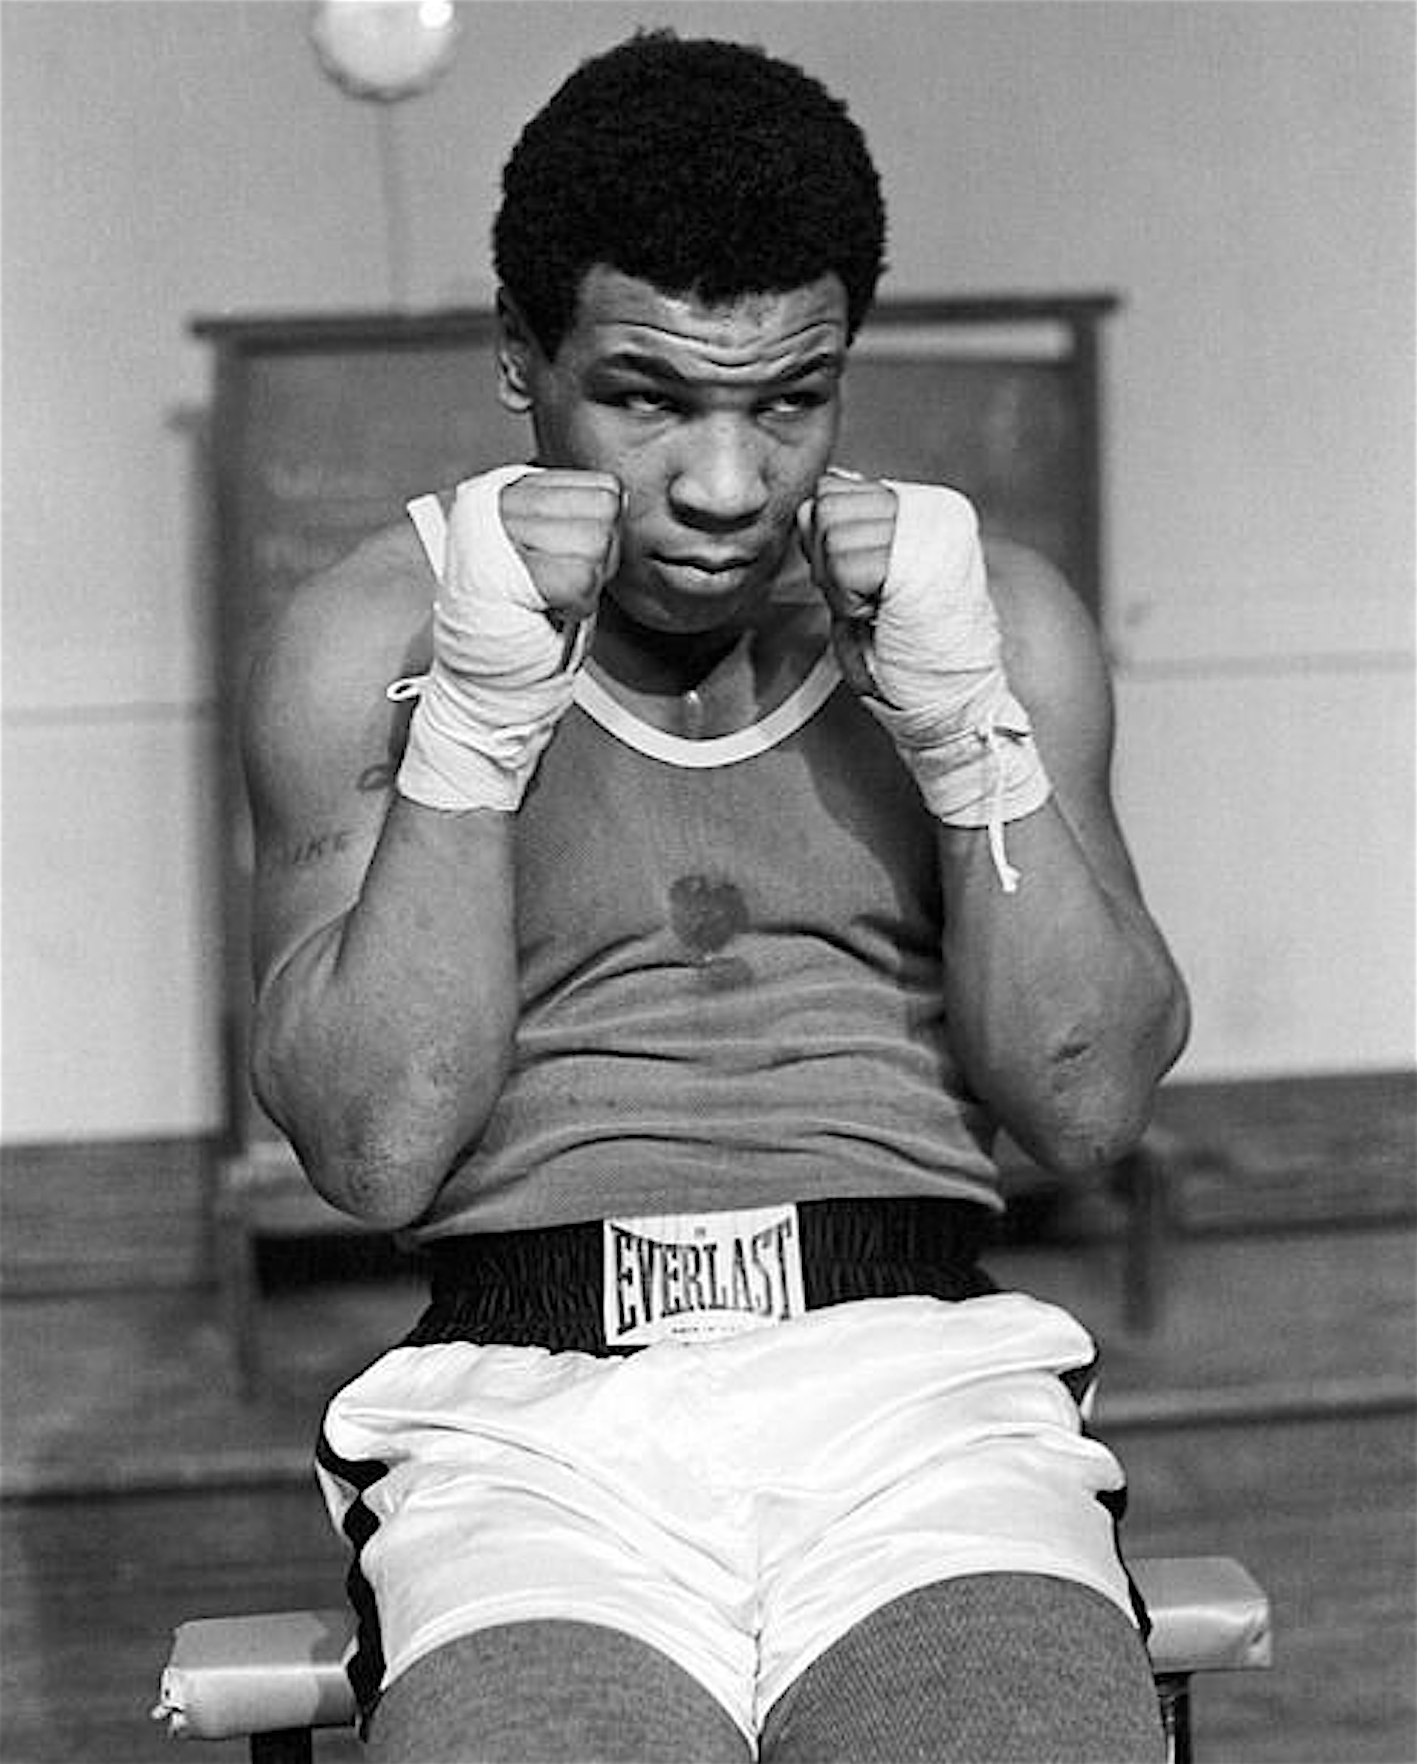 mike_tyson_very_young_giovane